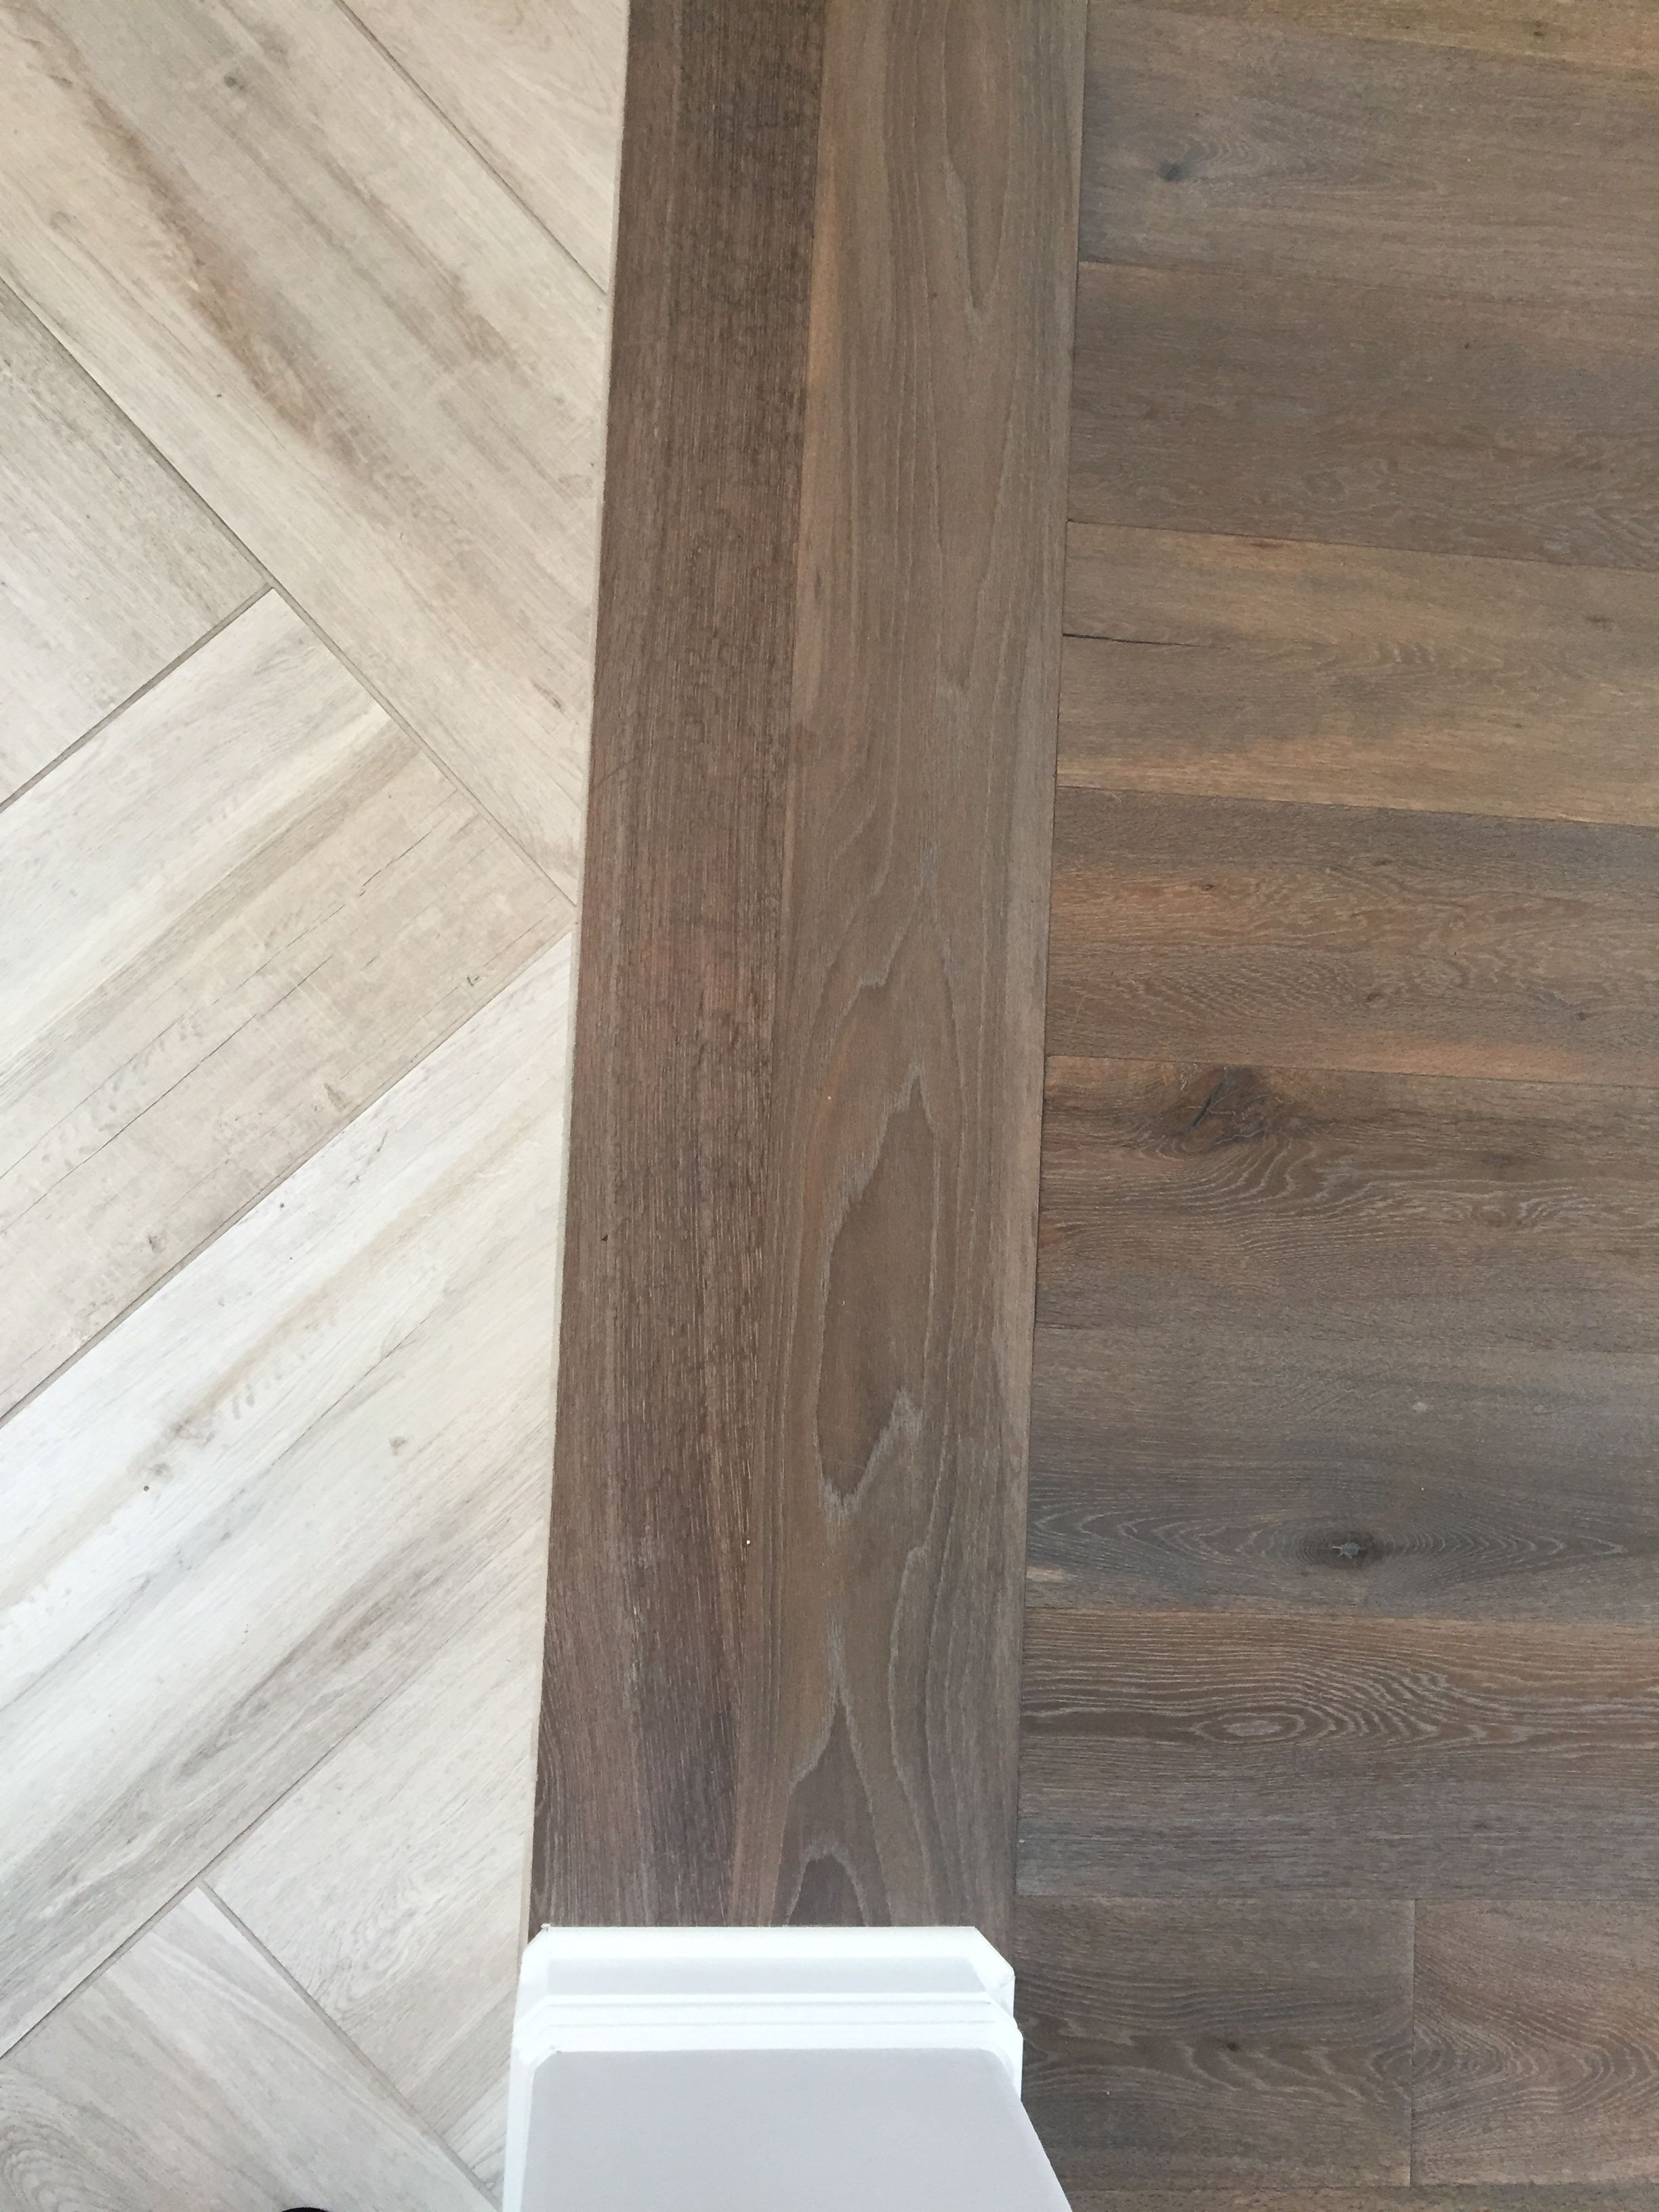 hardwood floor refinishing halifax ns of floor transition laminate to herringbone tile pattern model pertaining to floor transition laminate to herringbone tile pattern